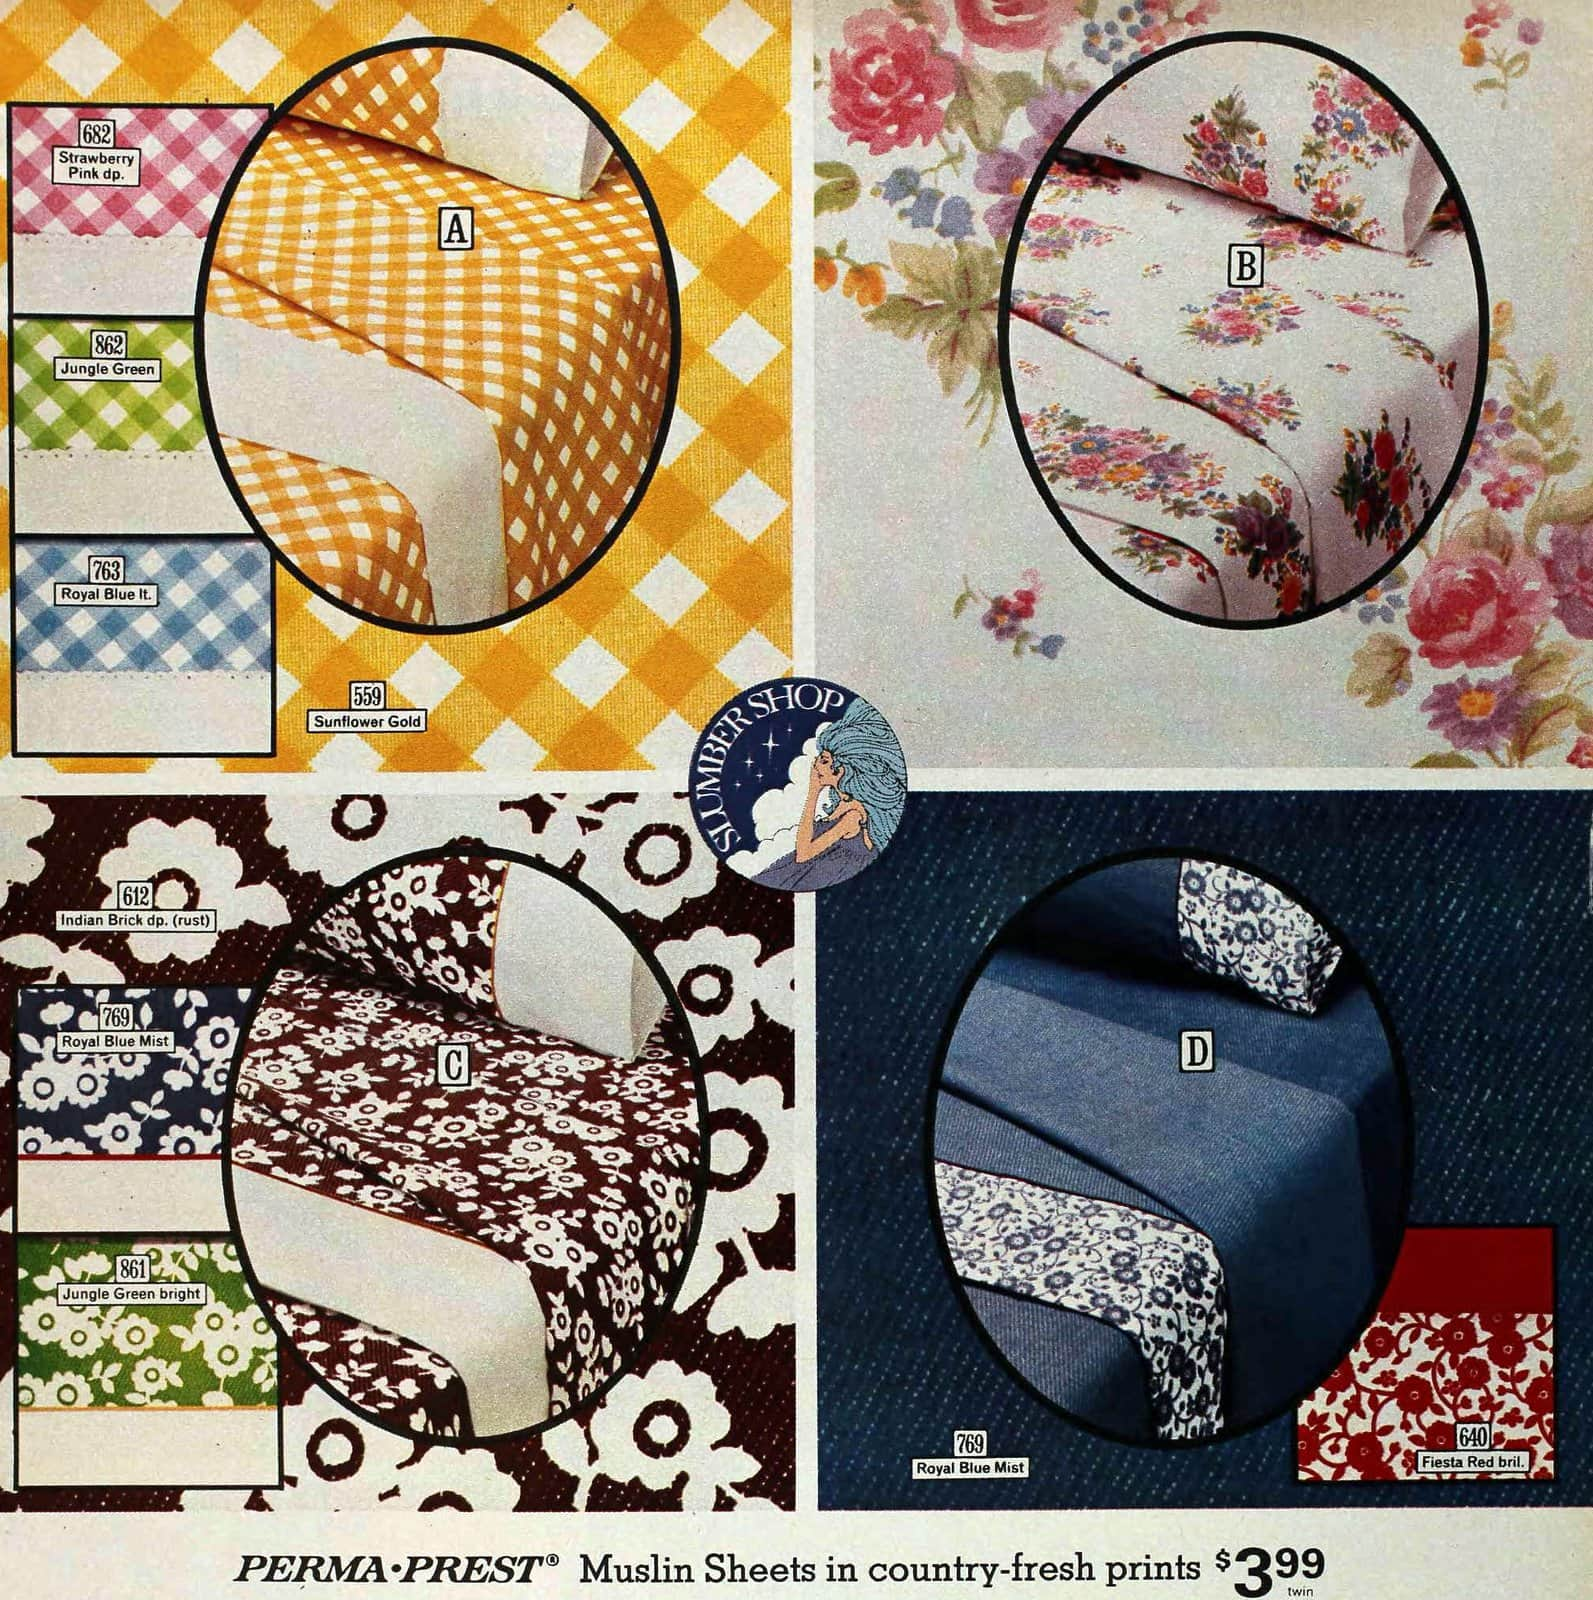 Retro colorful sheet sets from the 1970s - Checks and simple small floral patterns